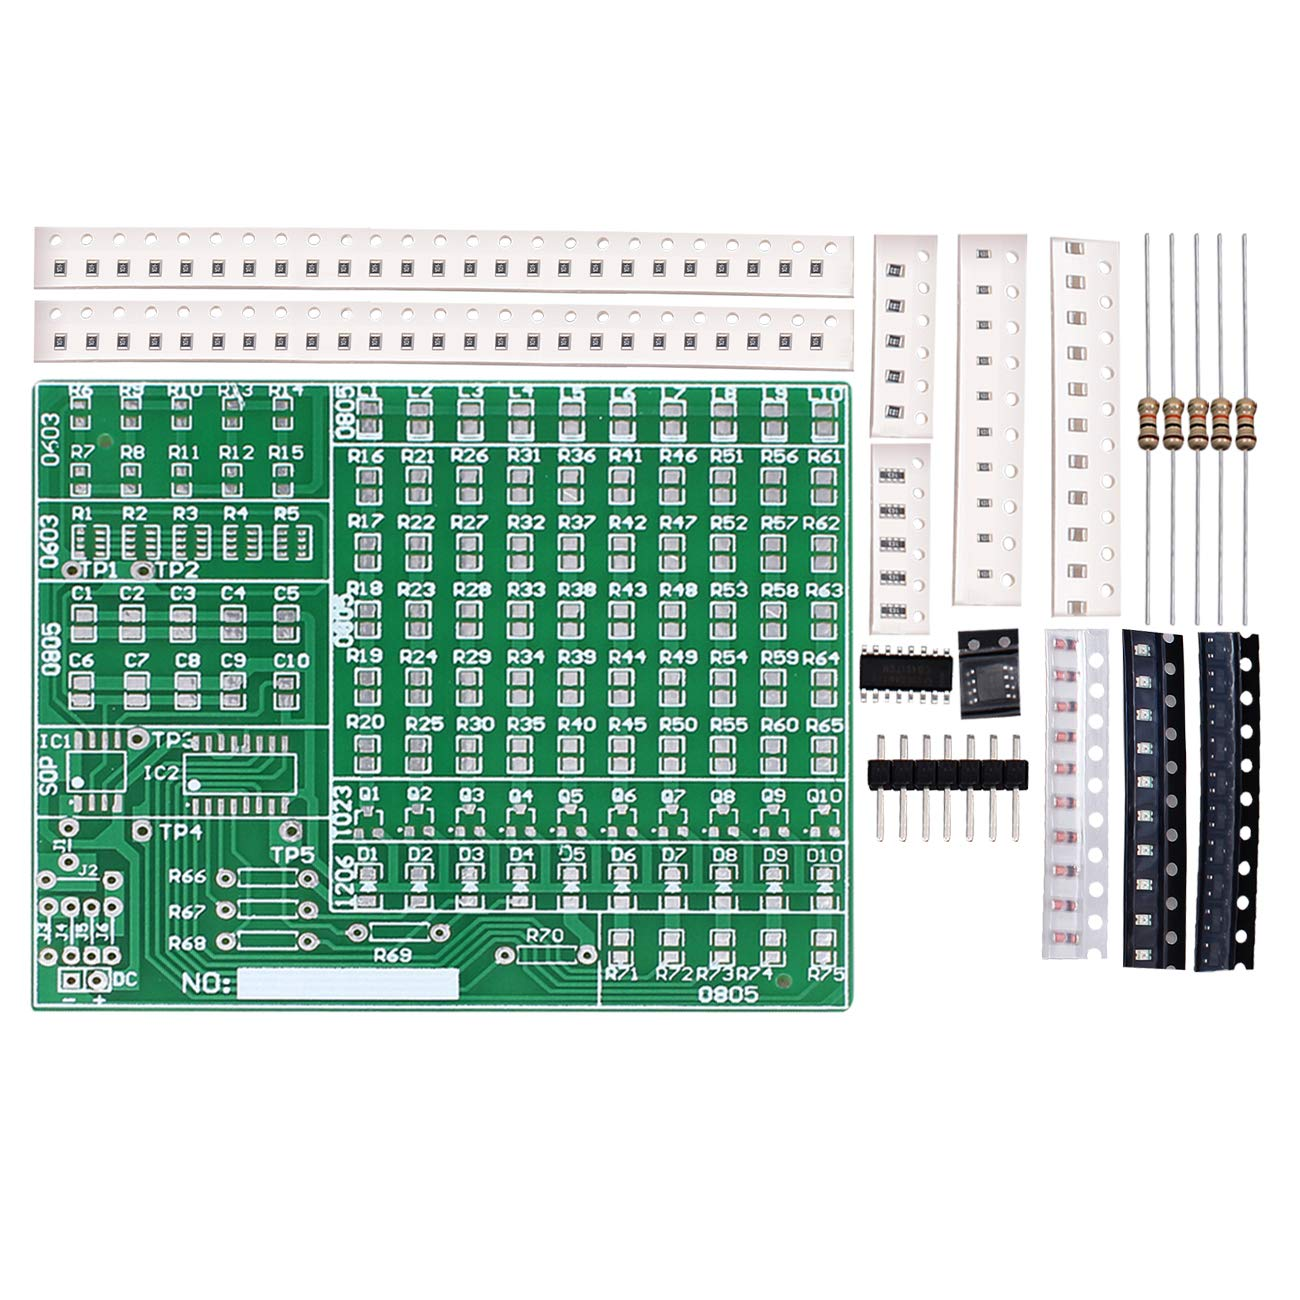 WHDTS 1 5mm SMT Components Solder Kit Practice PCB Board Electric DIY Kit  Learning Training Suite